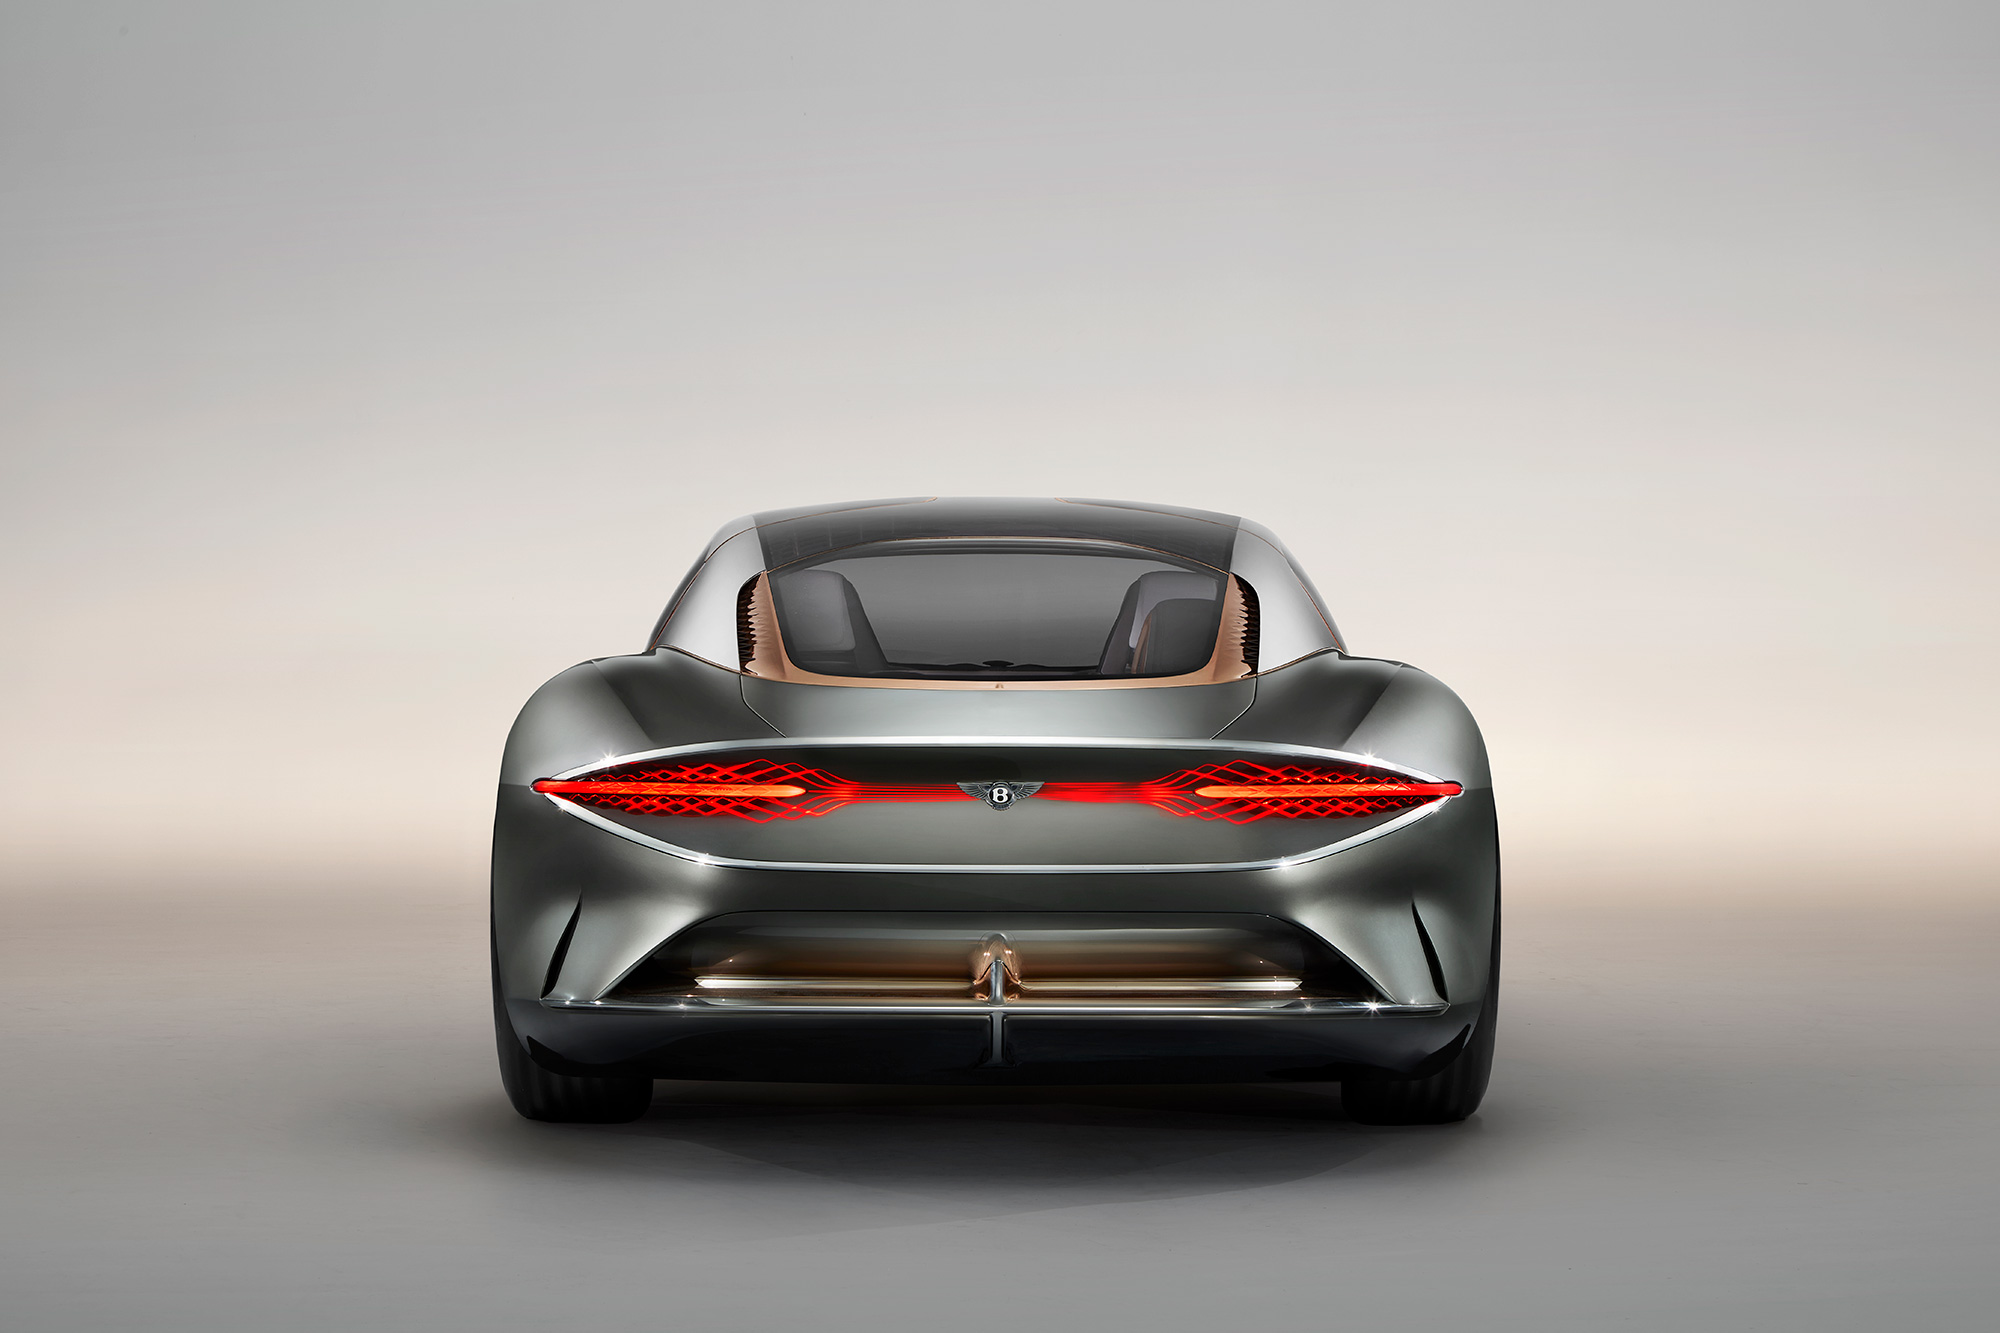 The new electric and autonomous Bentley EXP 100 GT